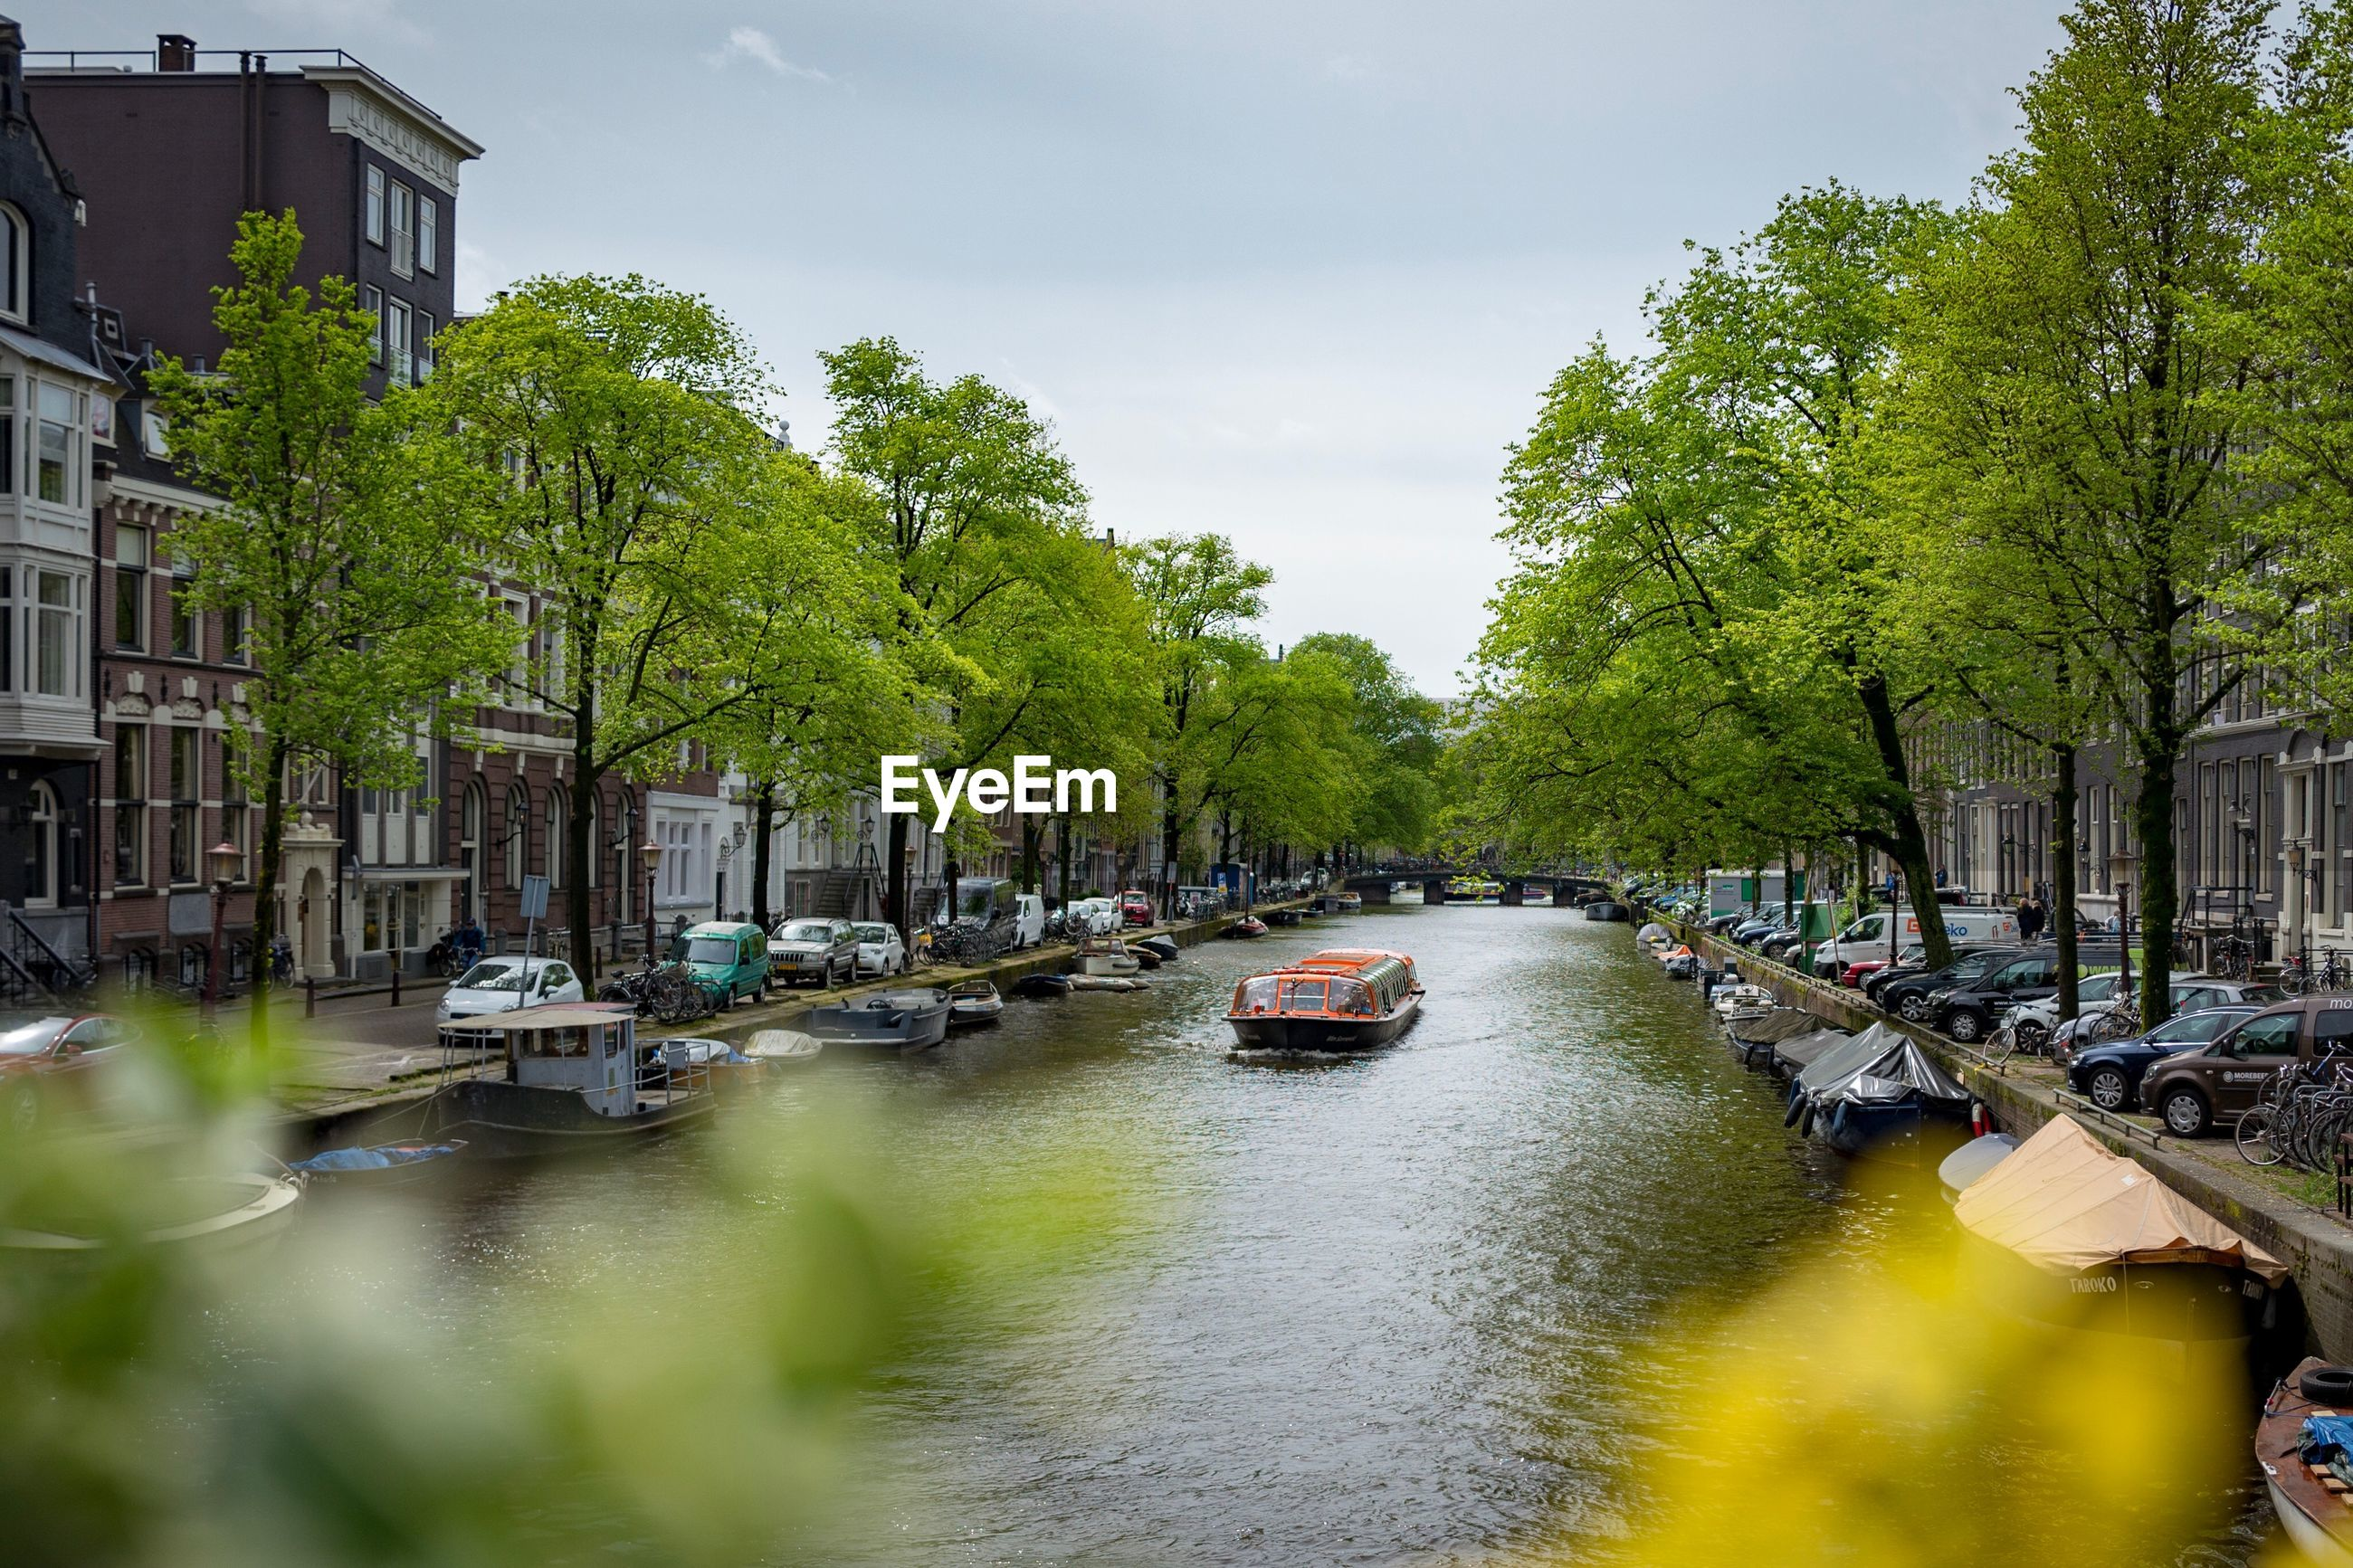 BOATS IN CANAL ALONG TREES AND BUILDINGS